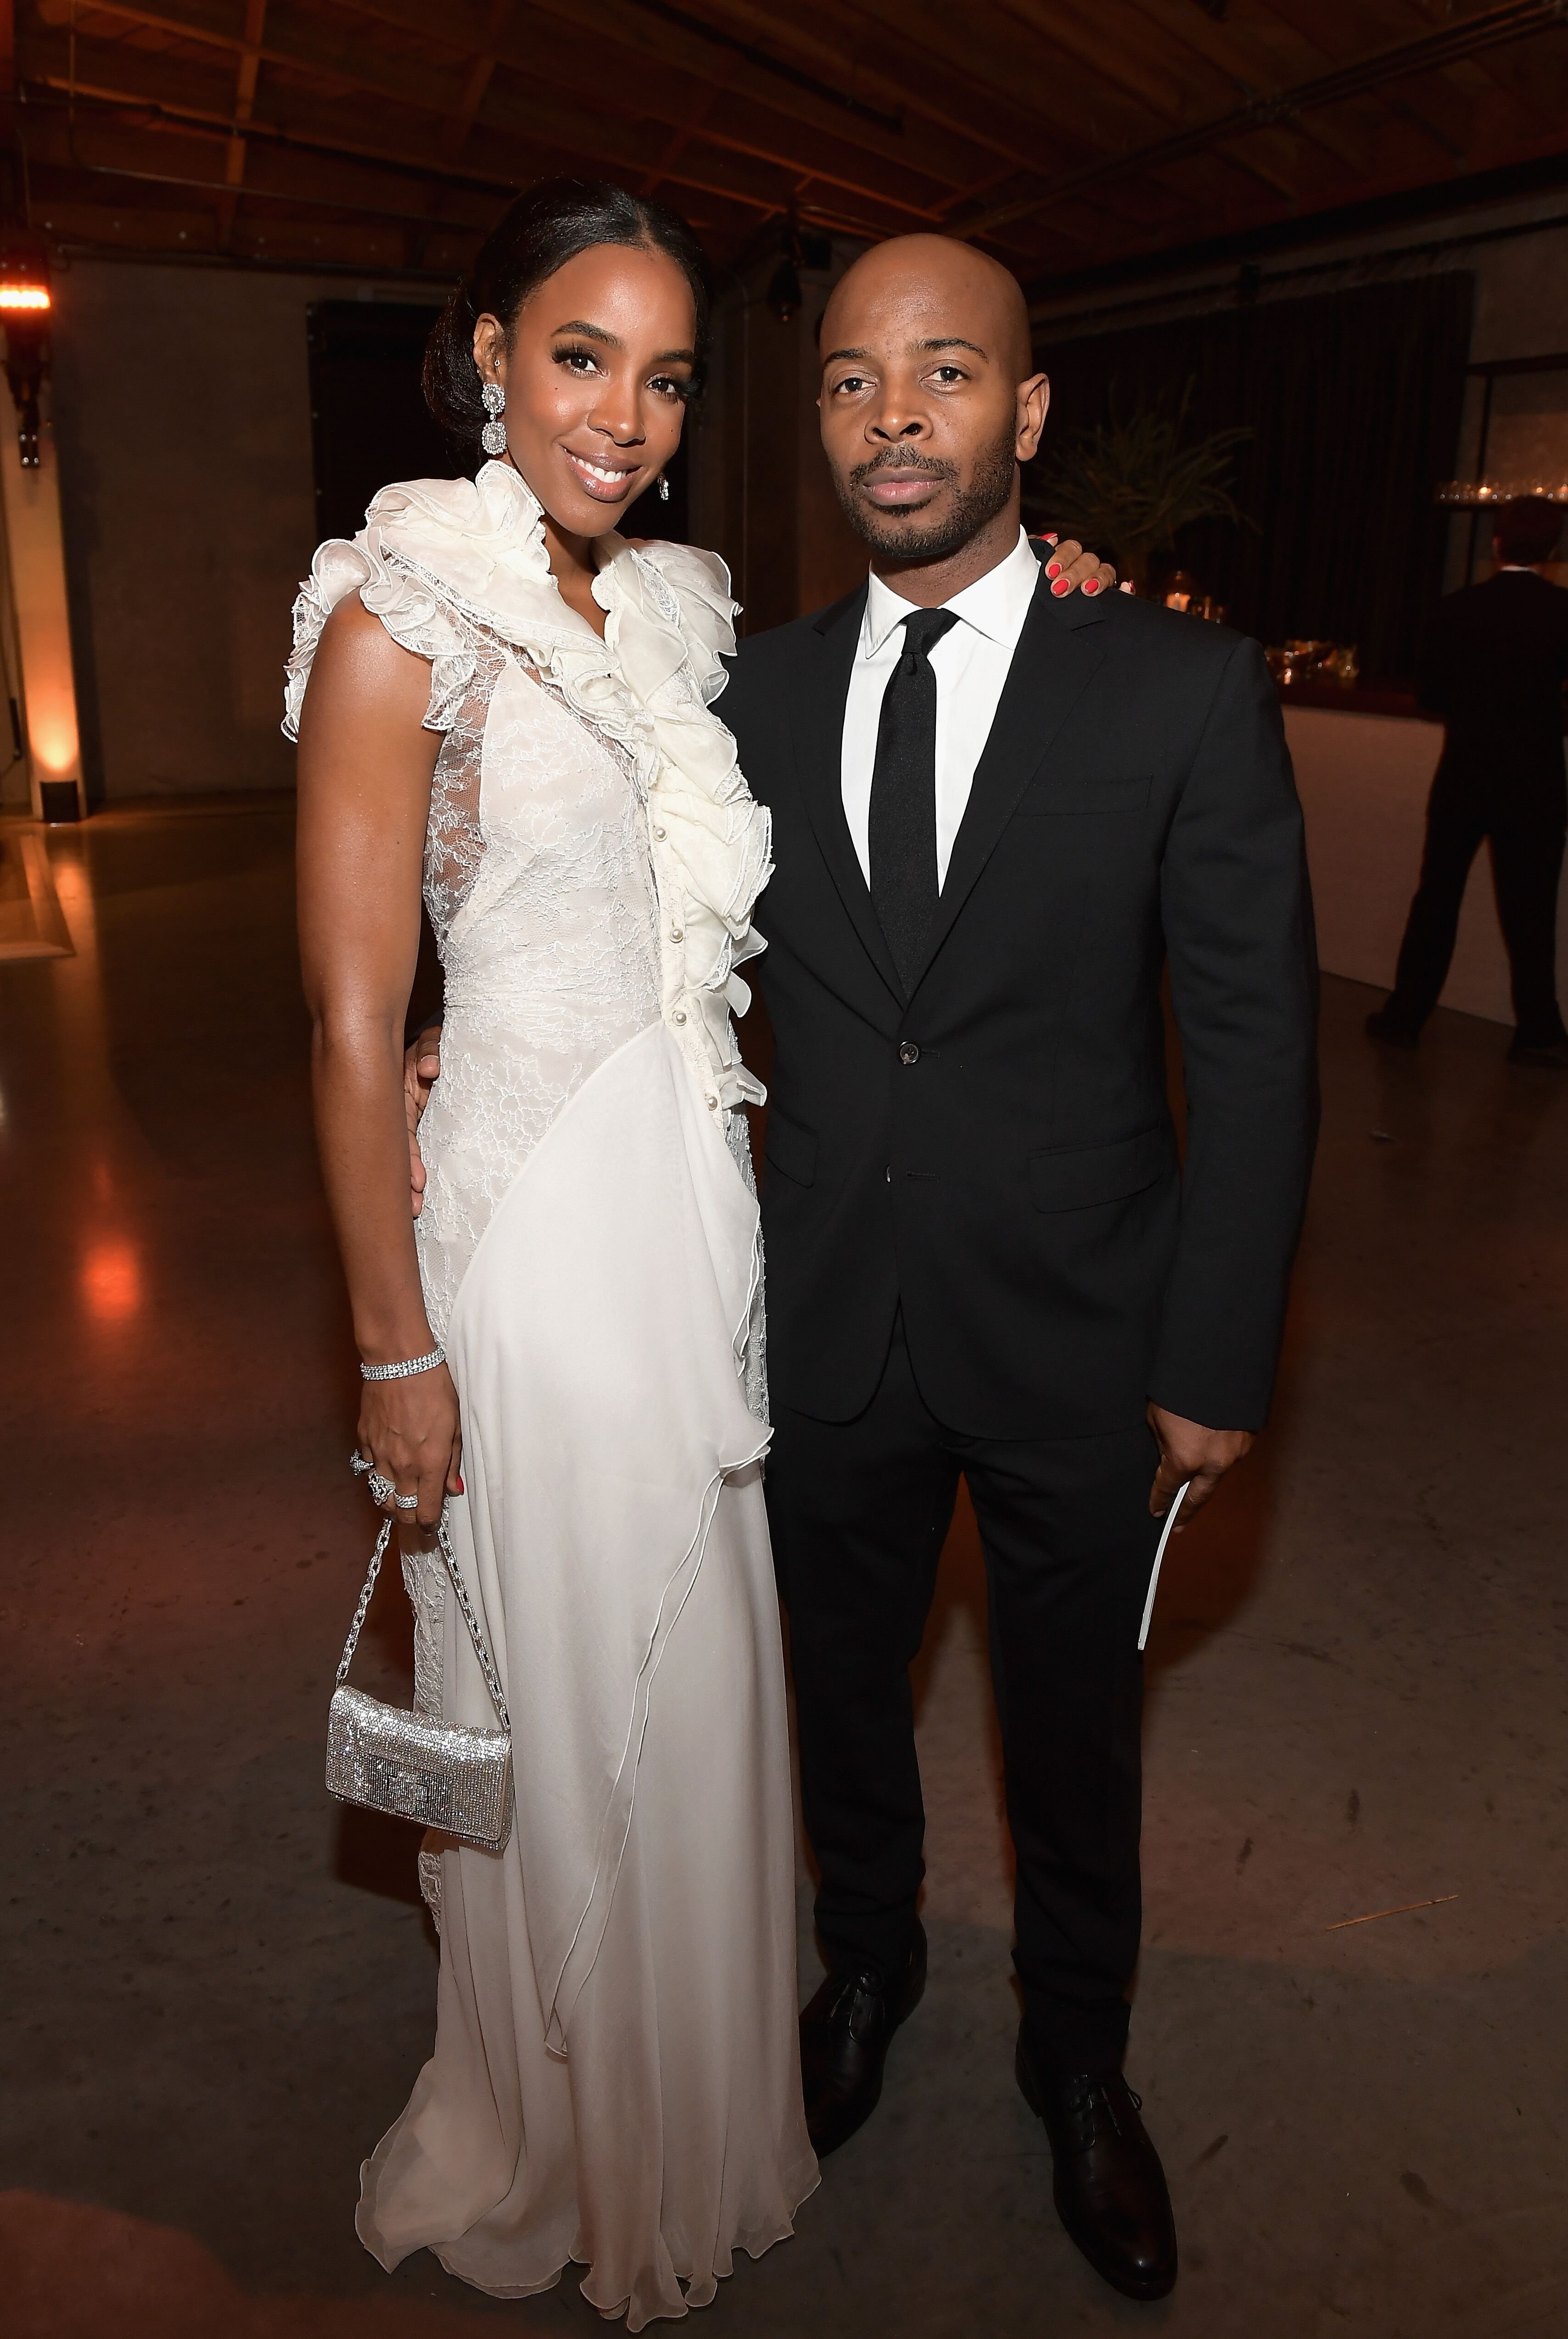 Kelly Rowland and Tim Witherspoon attends The 2017 Baby2Baby Gala presented by Paul Mitchell. | Source: Getty Images